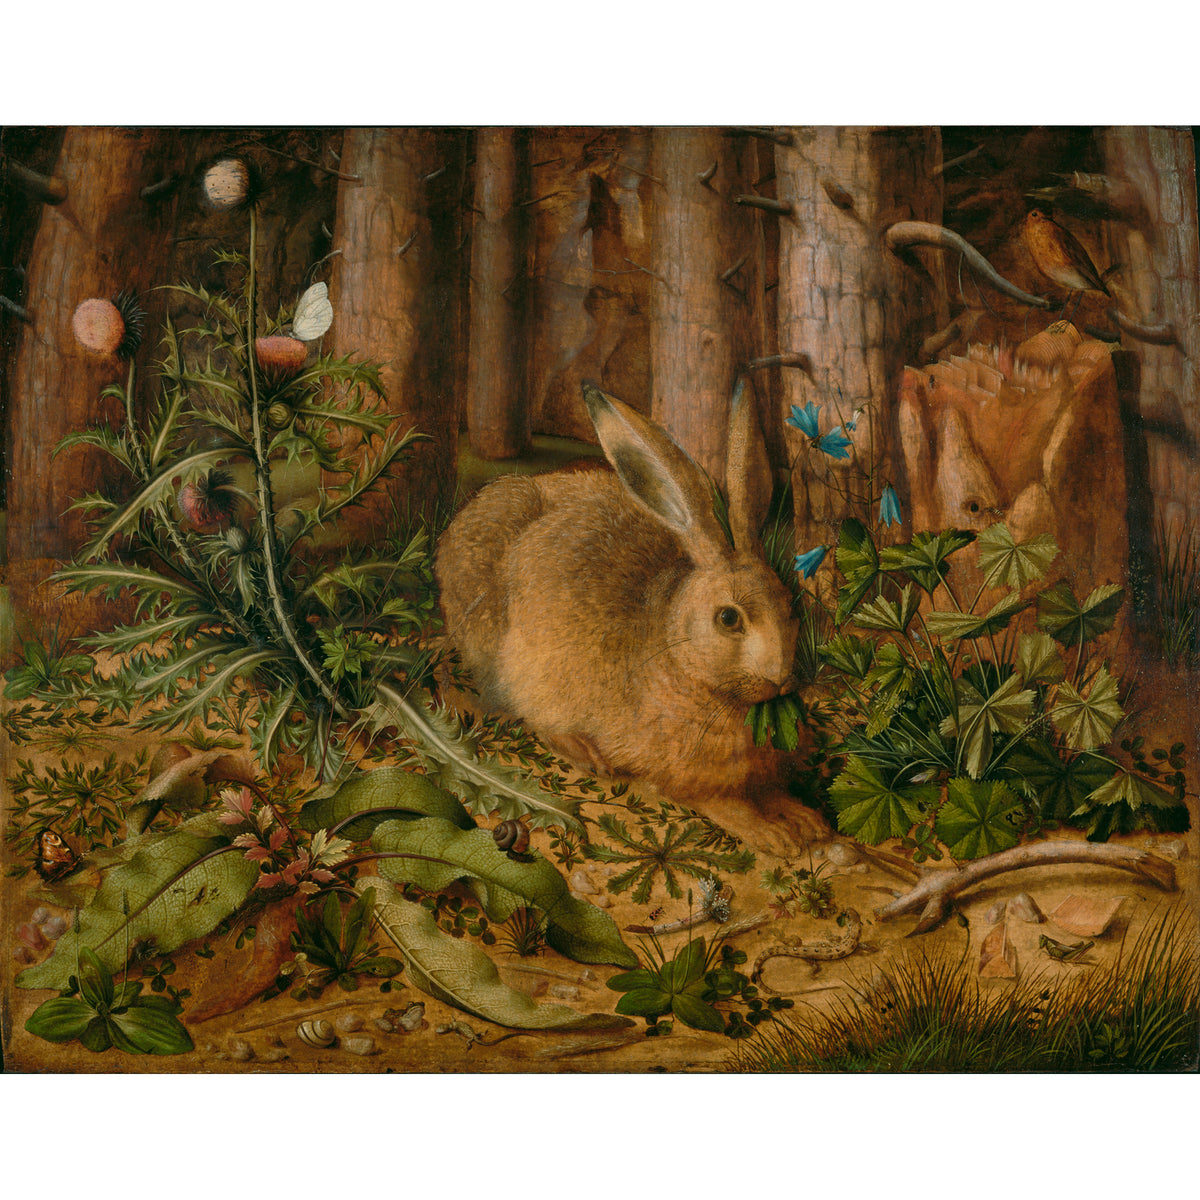 Plush Bunny Inspired by A Hare in the Forest by Hans Hoffmann- Painting which inspired plush bunny  | Getty Store